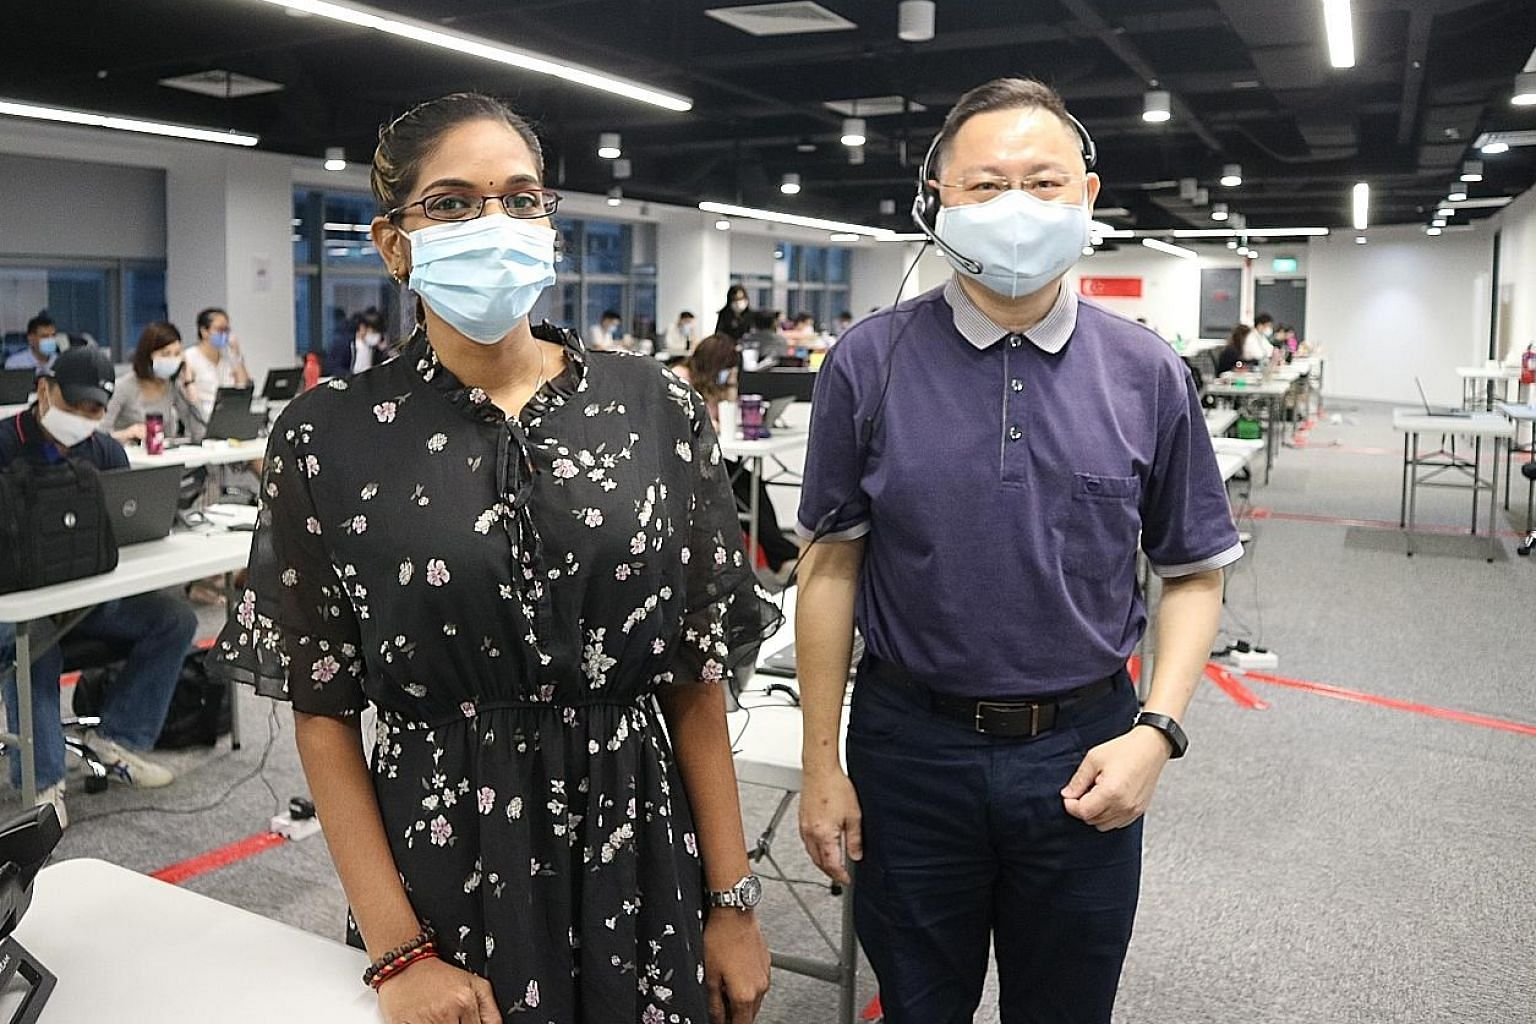 Ms J. P. Thanumadhya, 27, and Mr Zim Loo Poh Thye, 53, started work as call centre operators in July under Certis' initiative, Breaking Barriers.